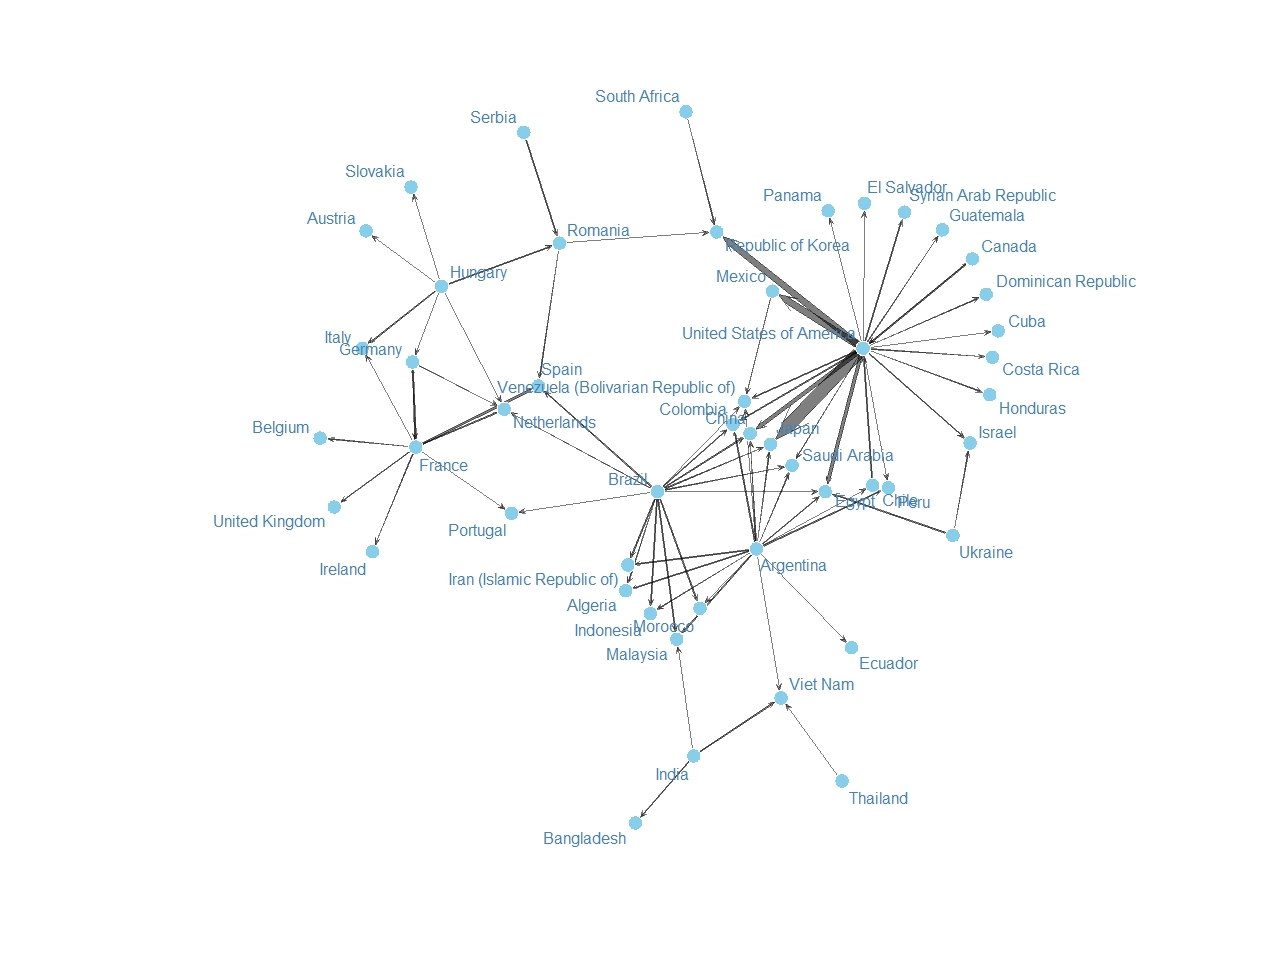 1280x954 Maize Trade Part I Generate The Network Diagram R Bloggers